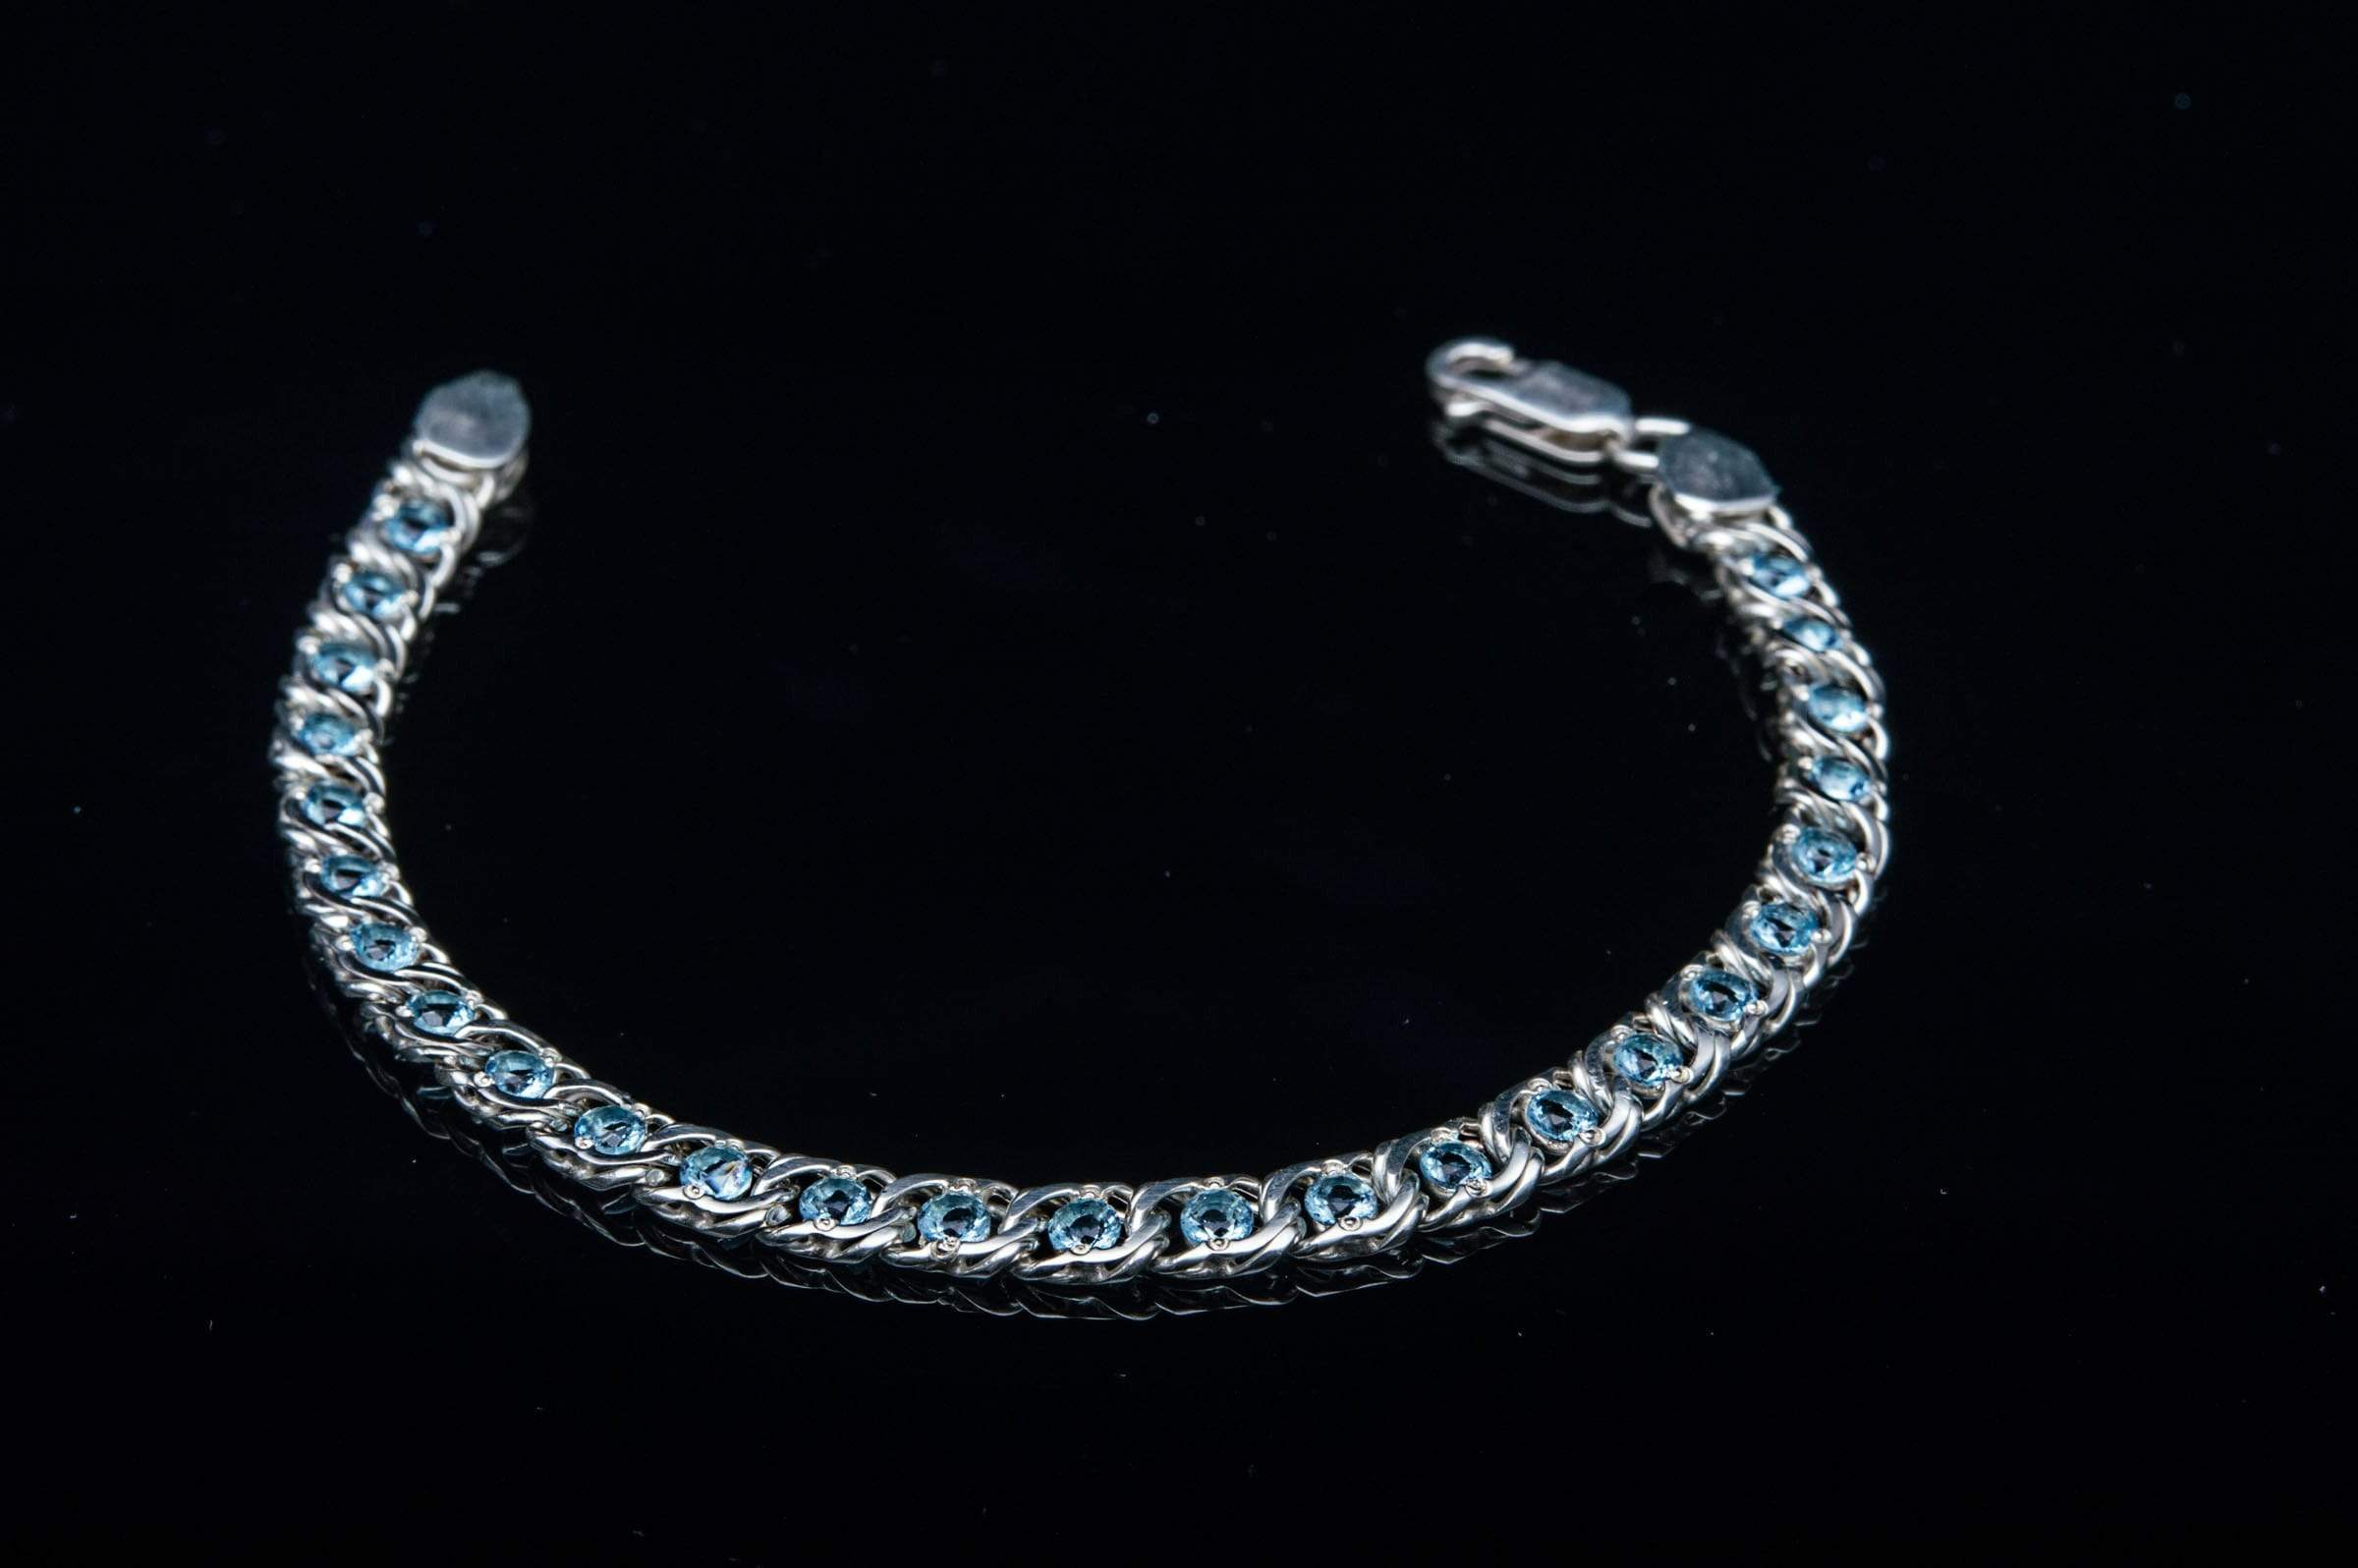 Ancient Smithy VW jewelry Handmade Sterling Silver Bracelet with Blue Cubic Zirconoa Jewelry